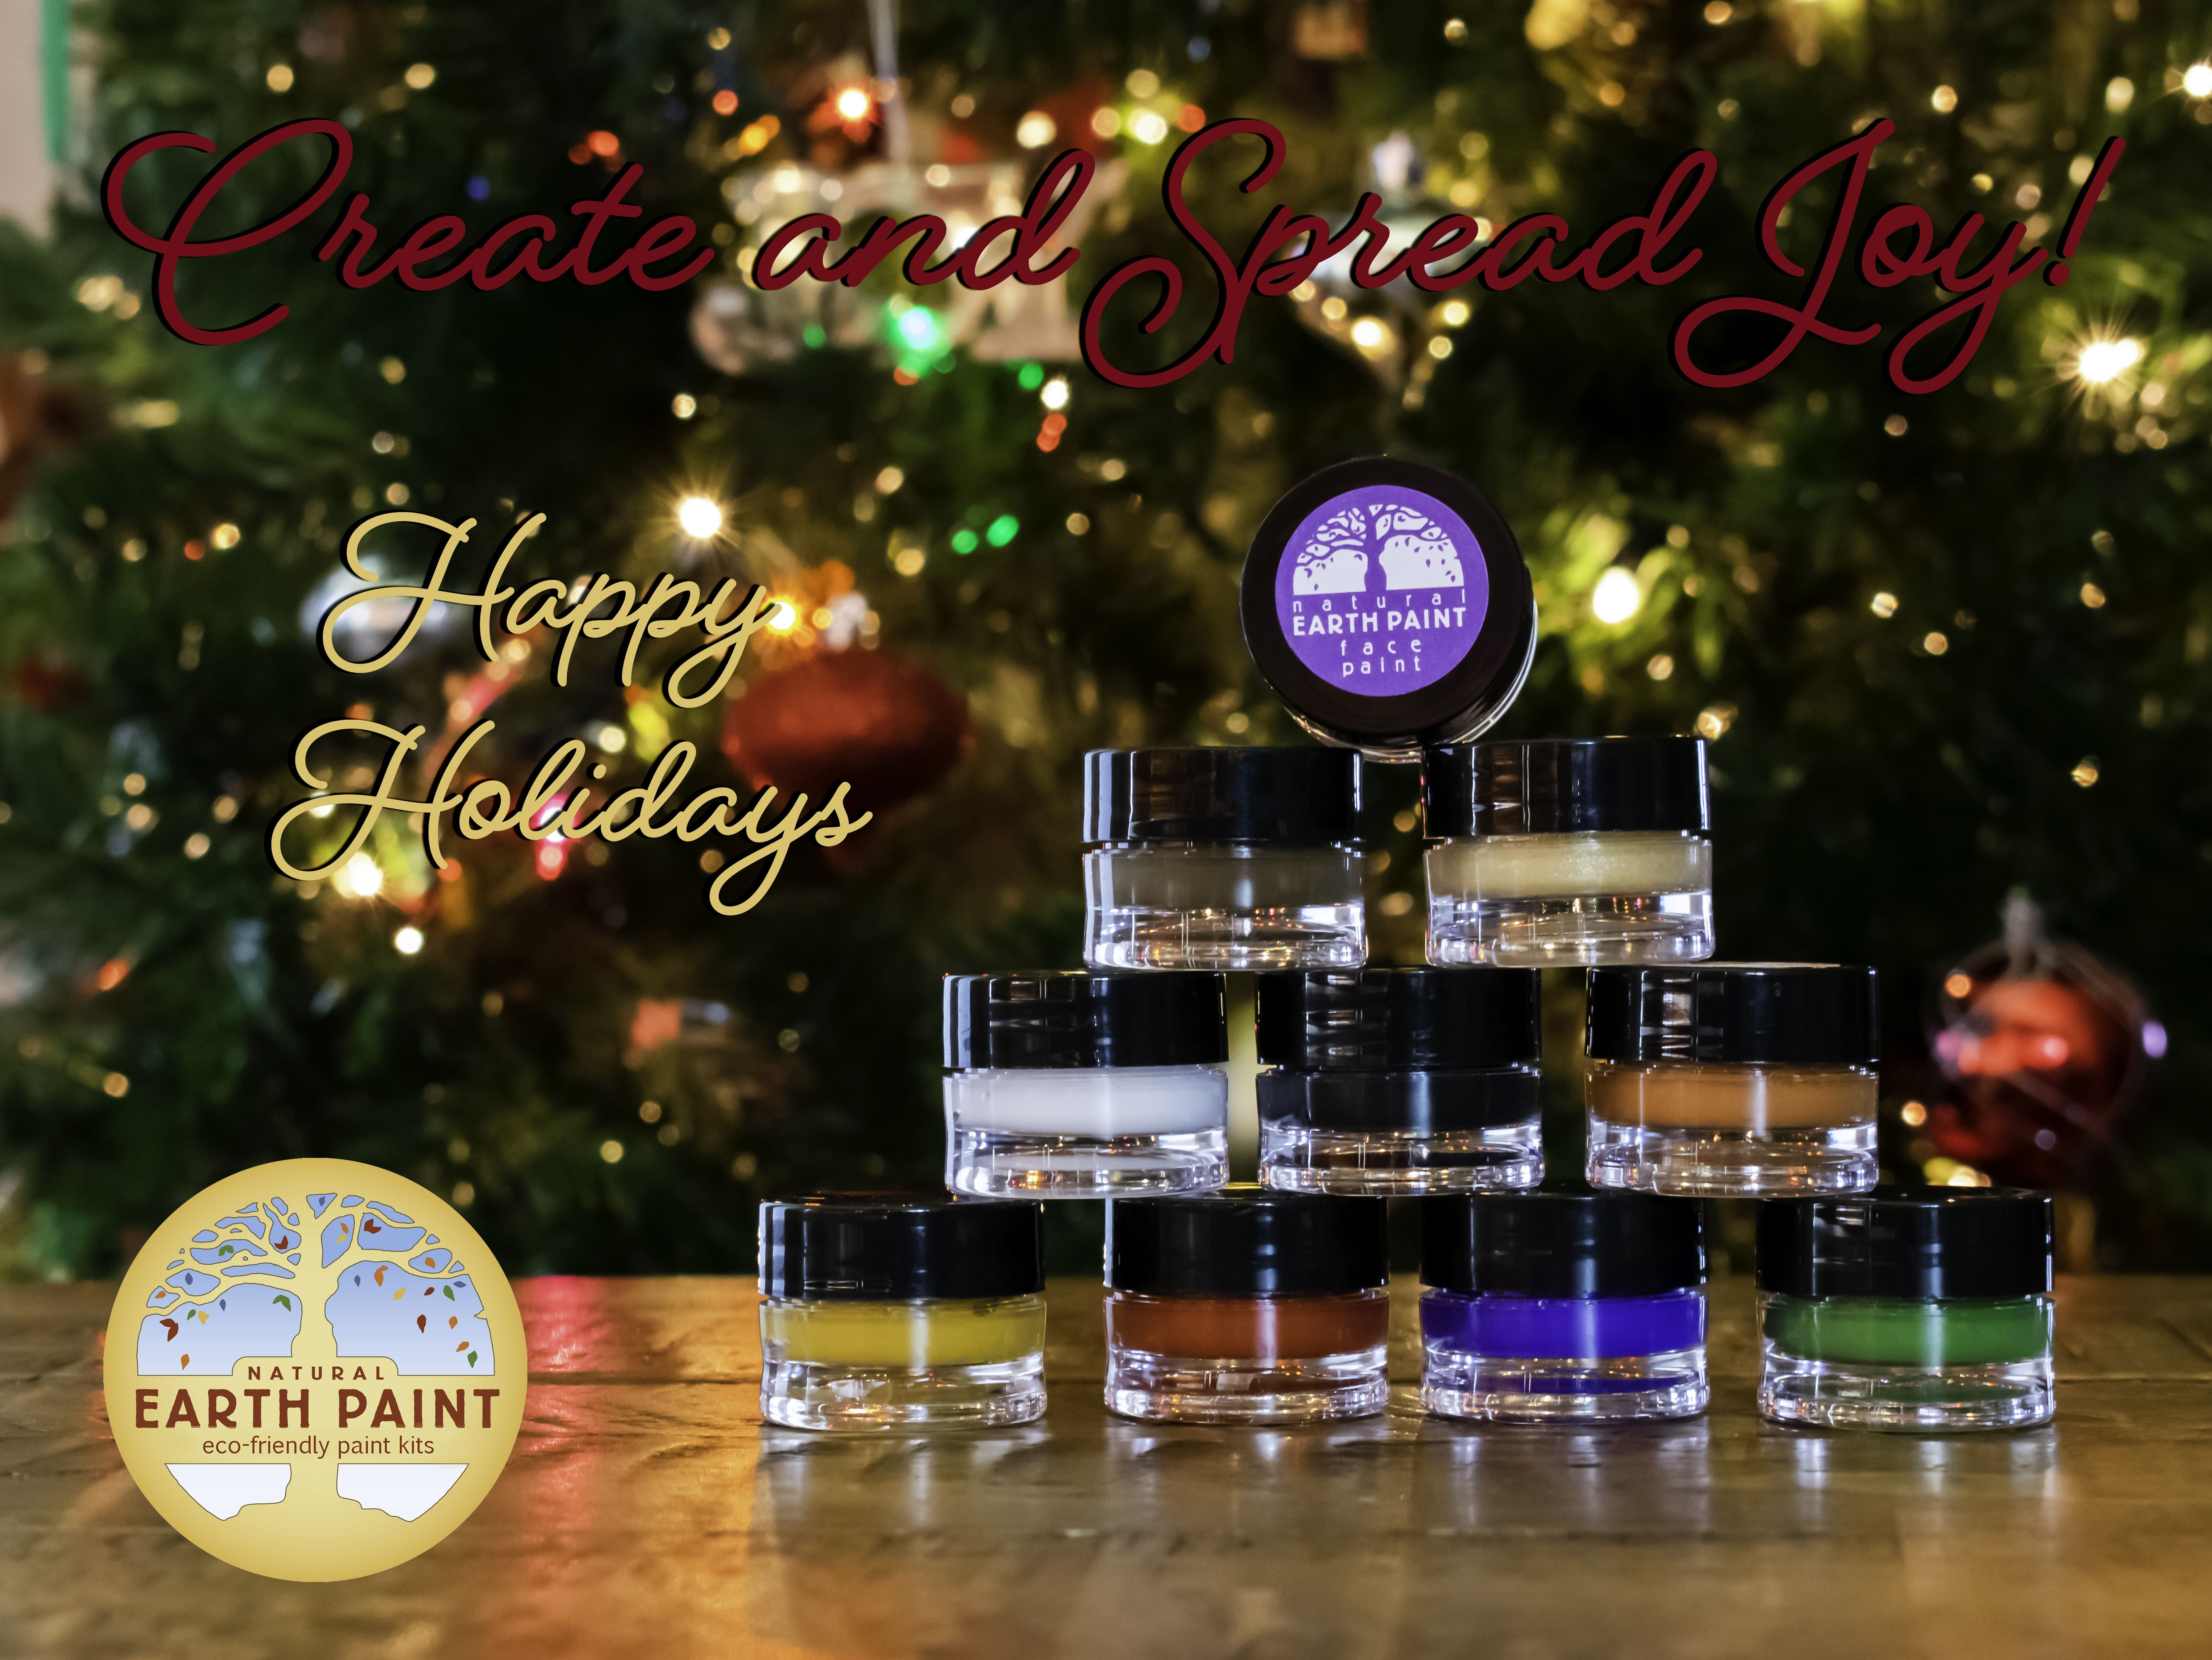 Free 2 3 Day Shipping From Natural Earth Paint Until Dec 15th